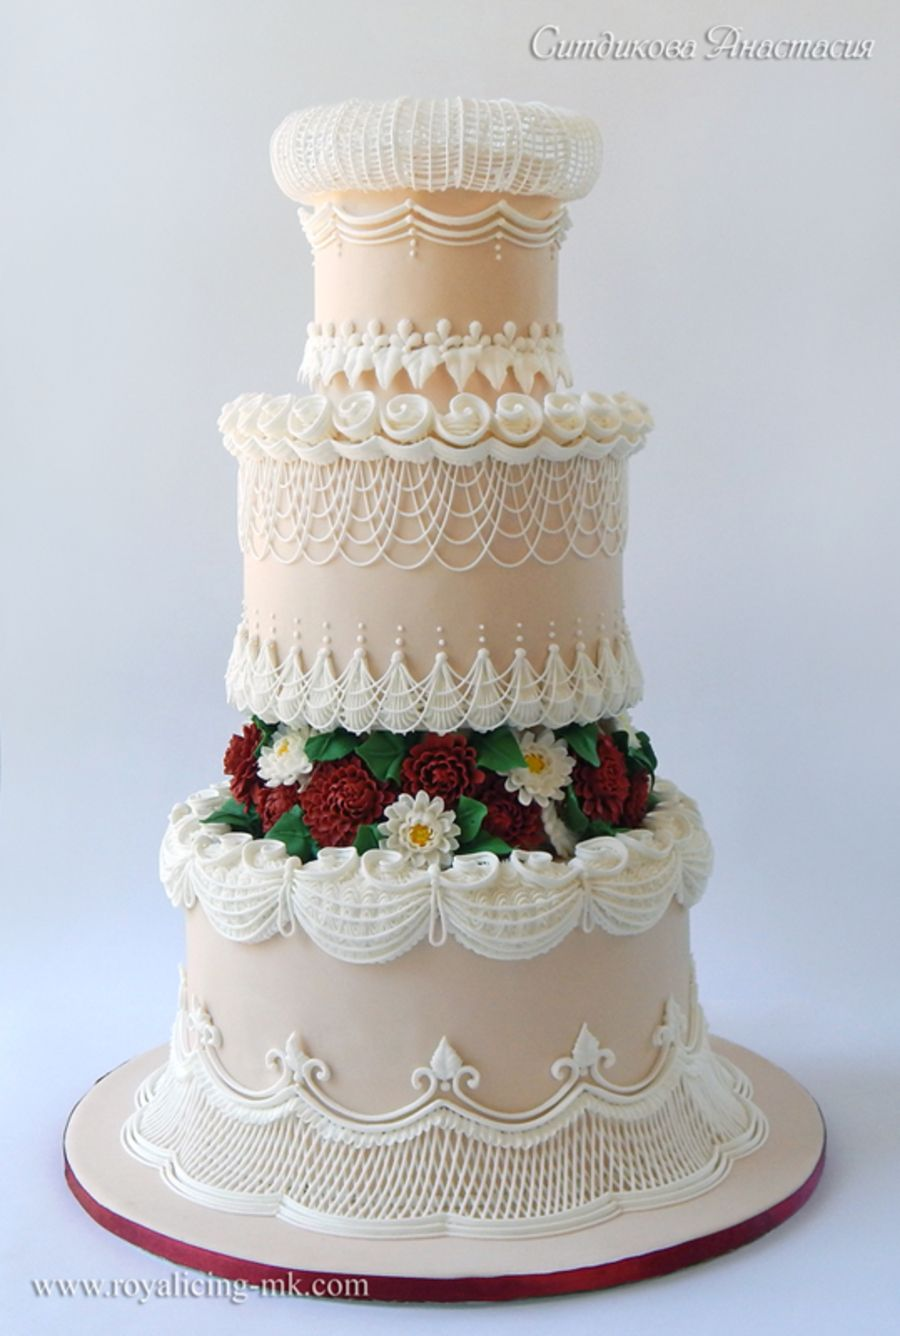 wedding cake icing recipe royal royal icing lambeth nirvana royal icing collars 22878